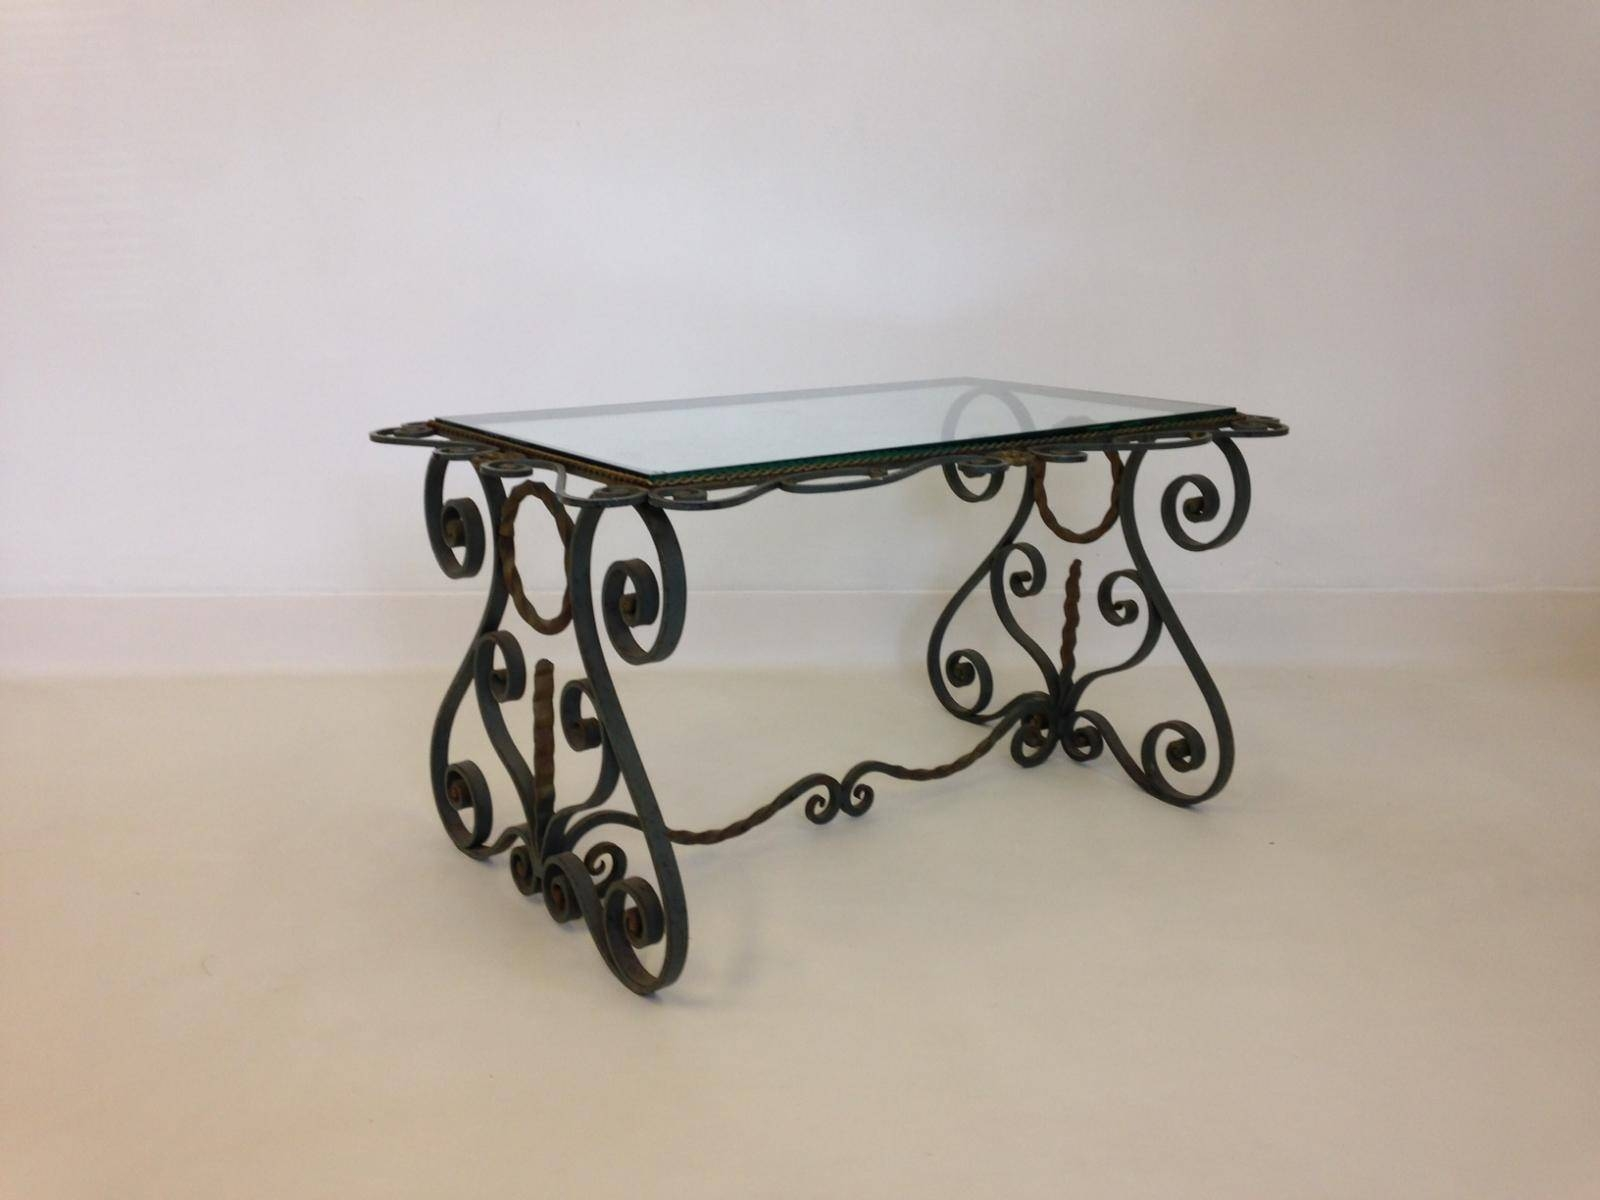 Vintage French Wrought Iron Coffee Table For Sale At Pamono within Wrought Iron Coffee Tables (Image 14 of 30)